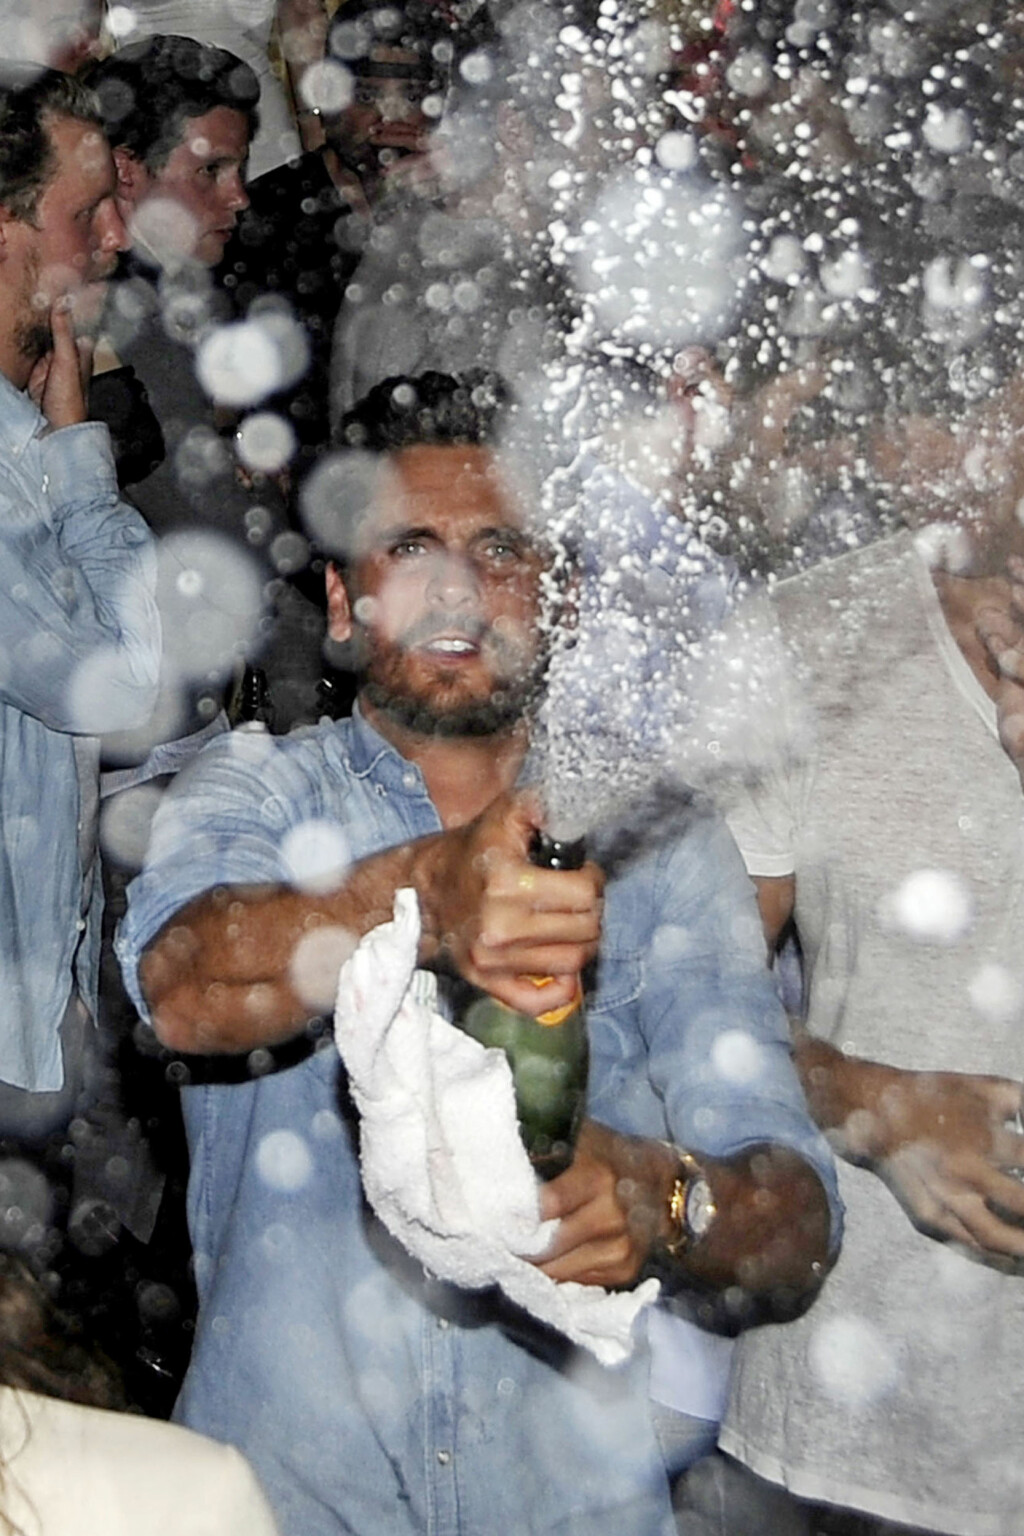 PARTY GUTT: Scott Disick er ikke kjent for å takke nei til en fest. Her spruter han dyr champagne på vennene sine under en bursdagsfest.  Foto: All Over Press